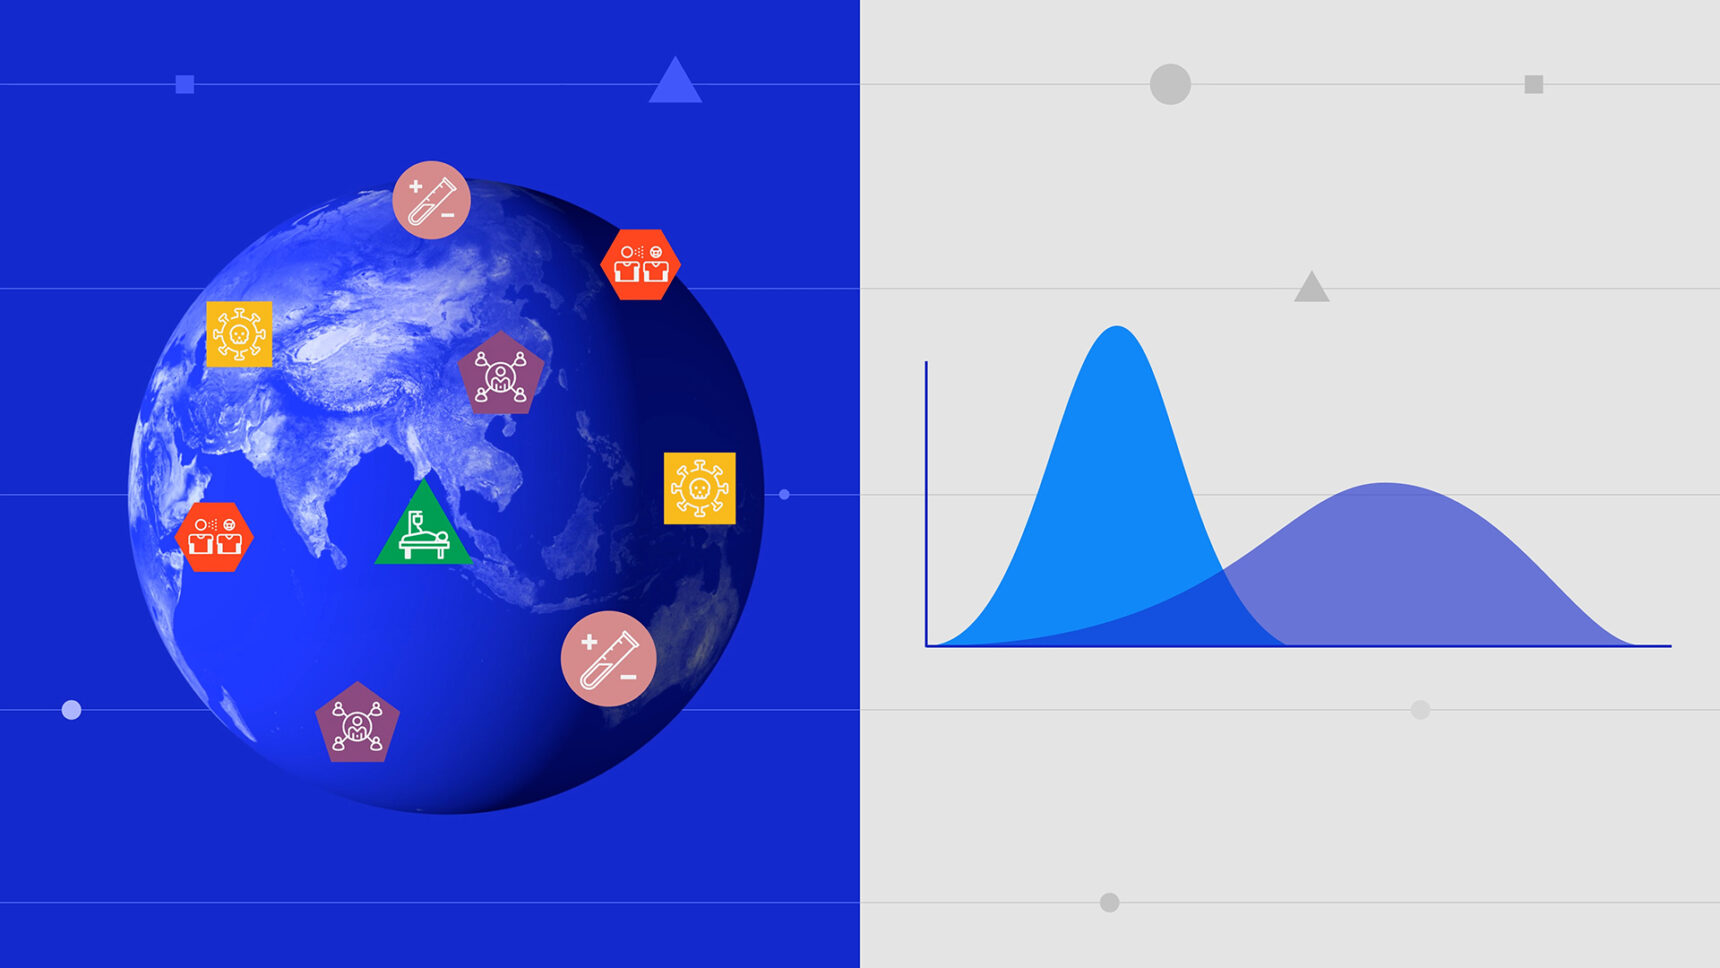 To understand what epidemiological models can tell us, it helps to first understand what they can't. In this comprehensive explainer, we break down how epidemiological models are built and dispel some of the common misunderstandings about their applications.